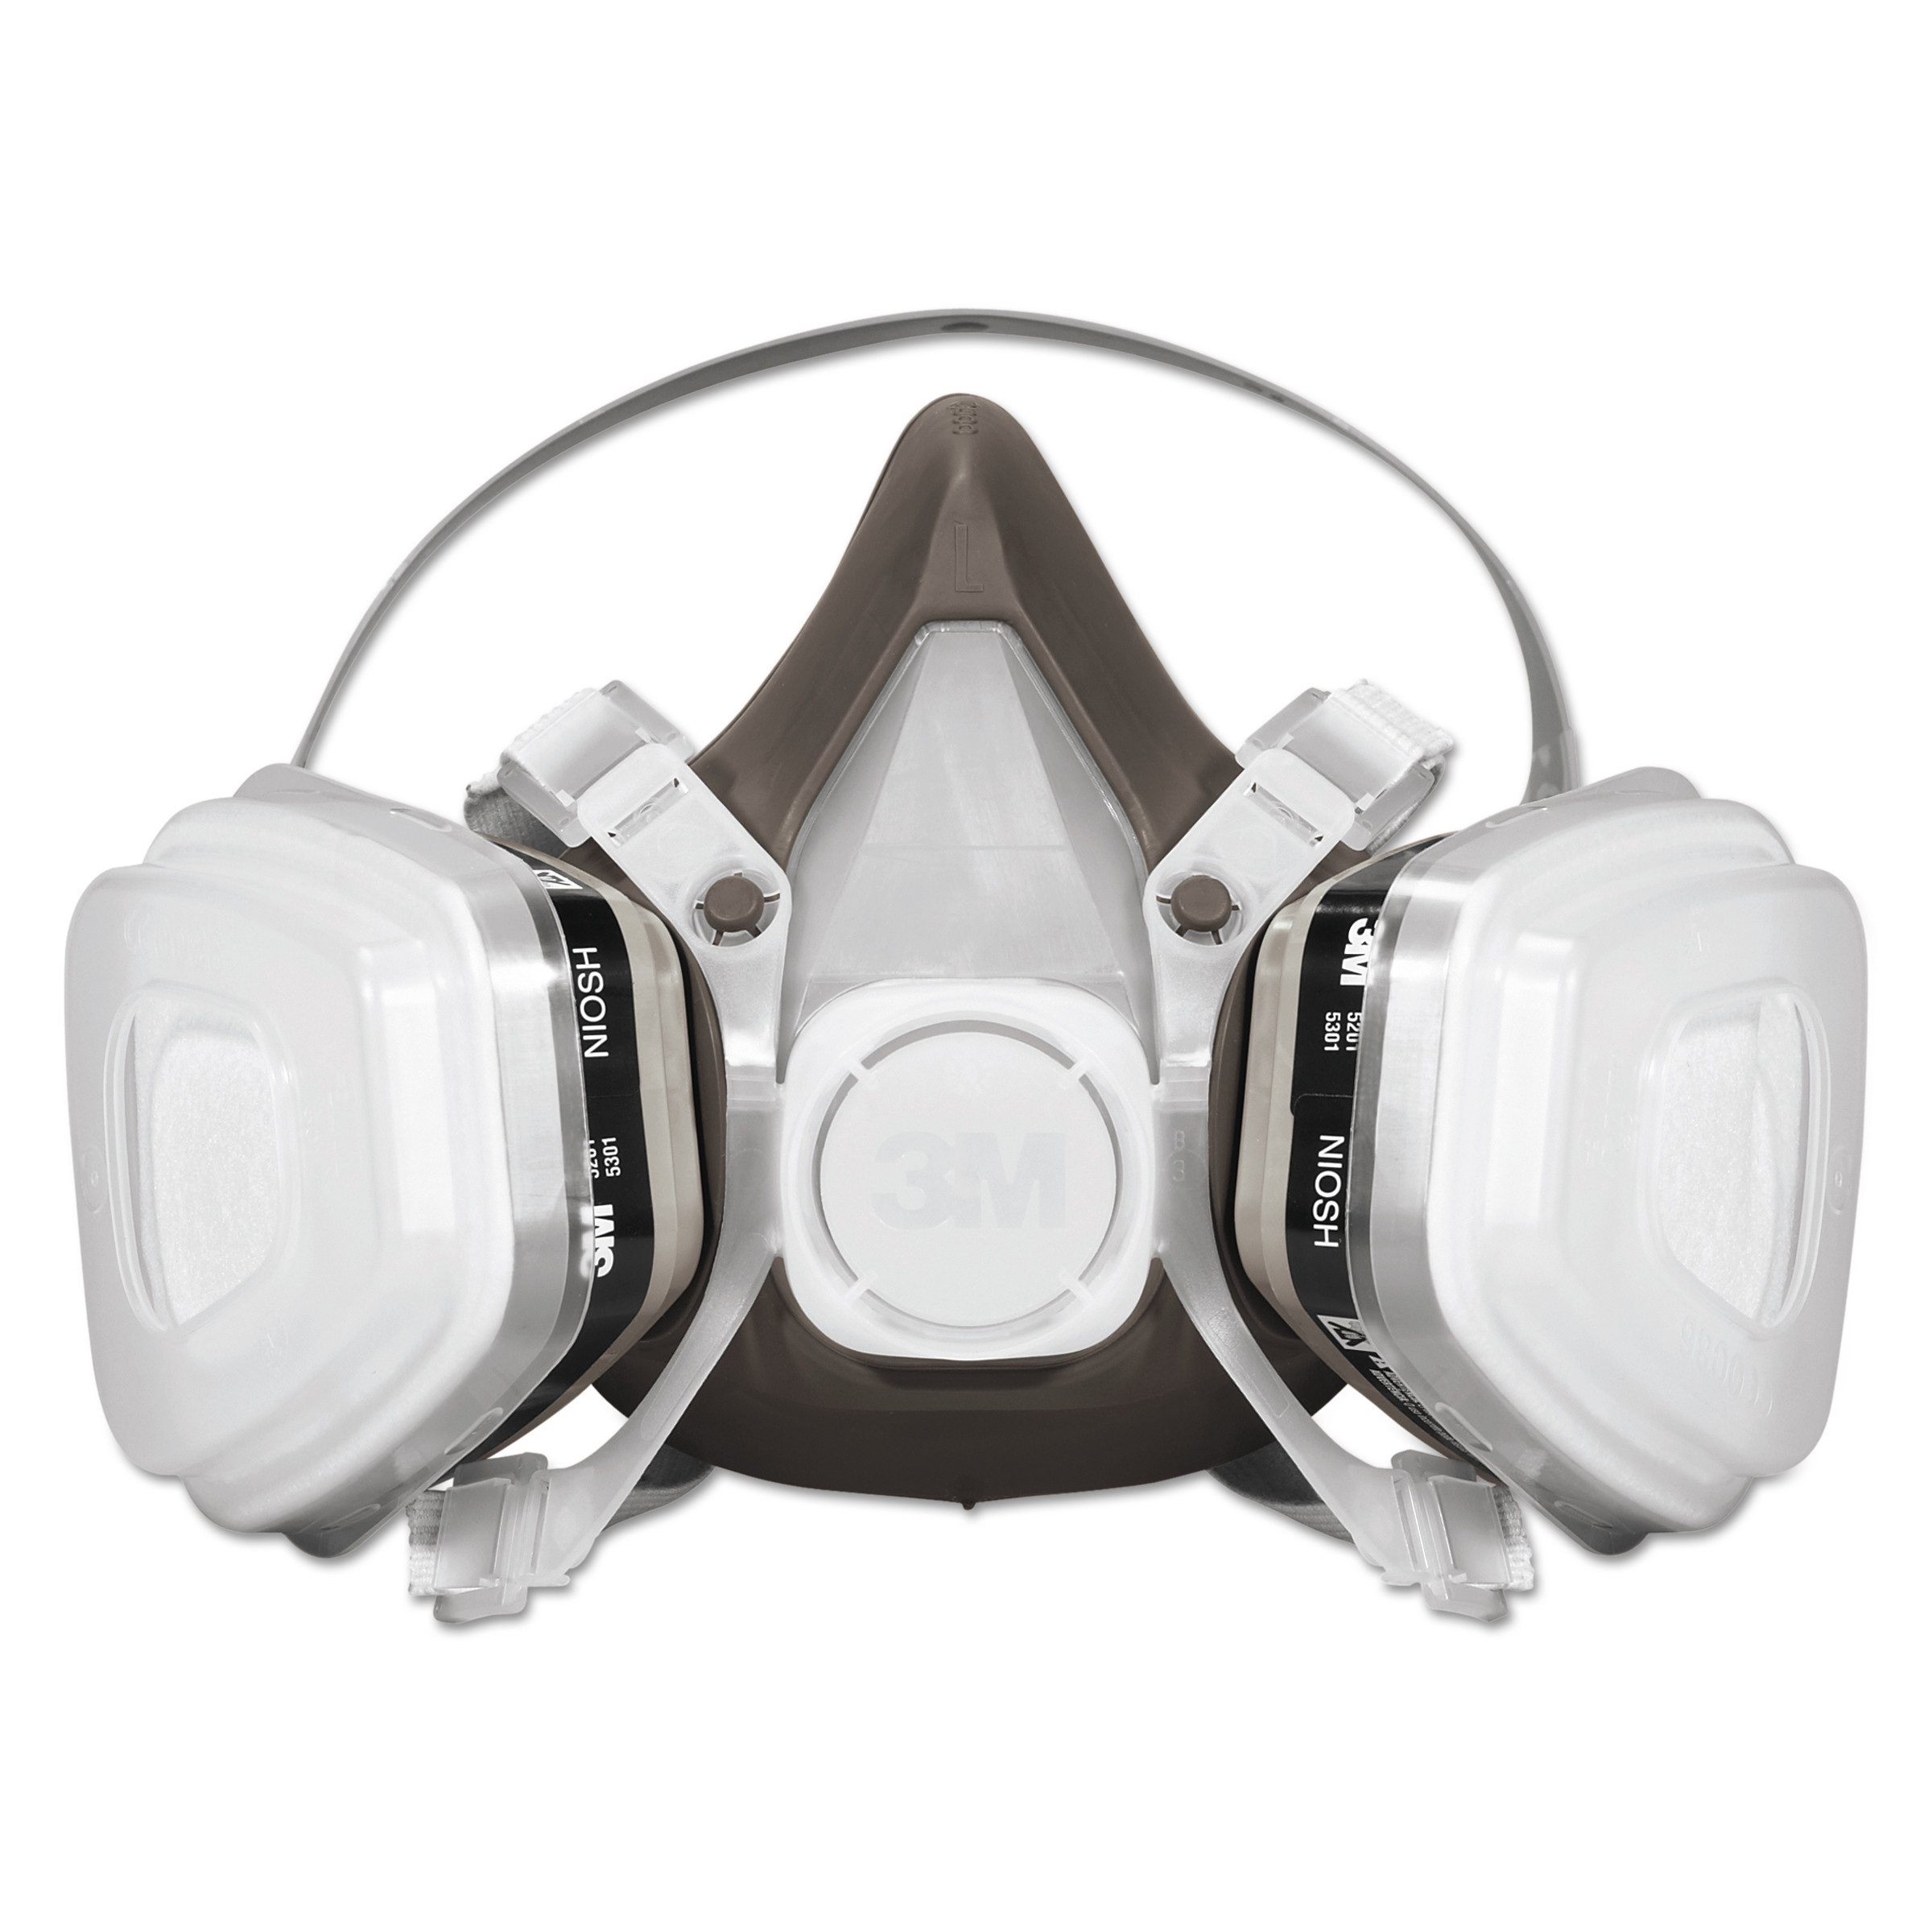 3m 5000 series disposable half mask respirator assembly